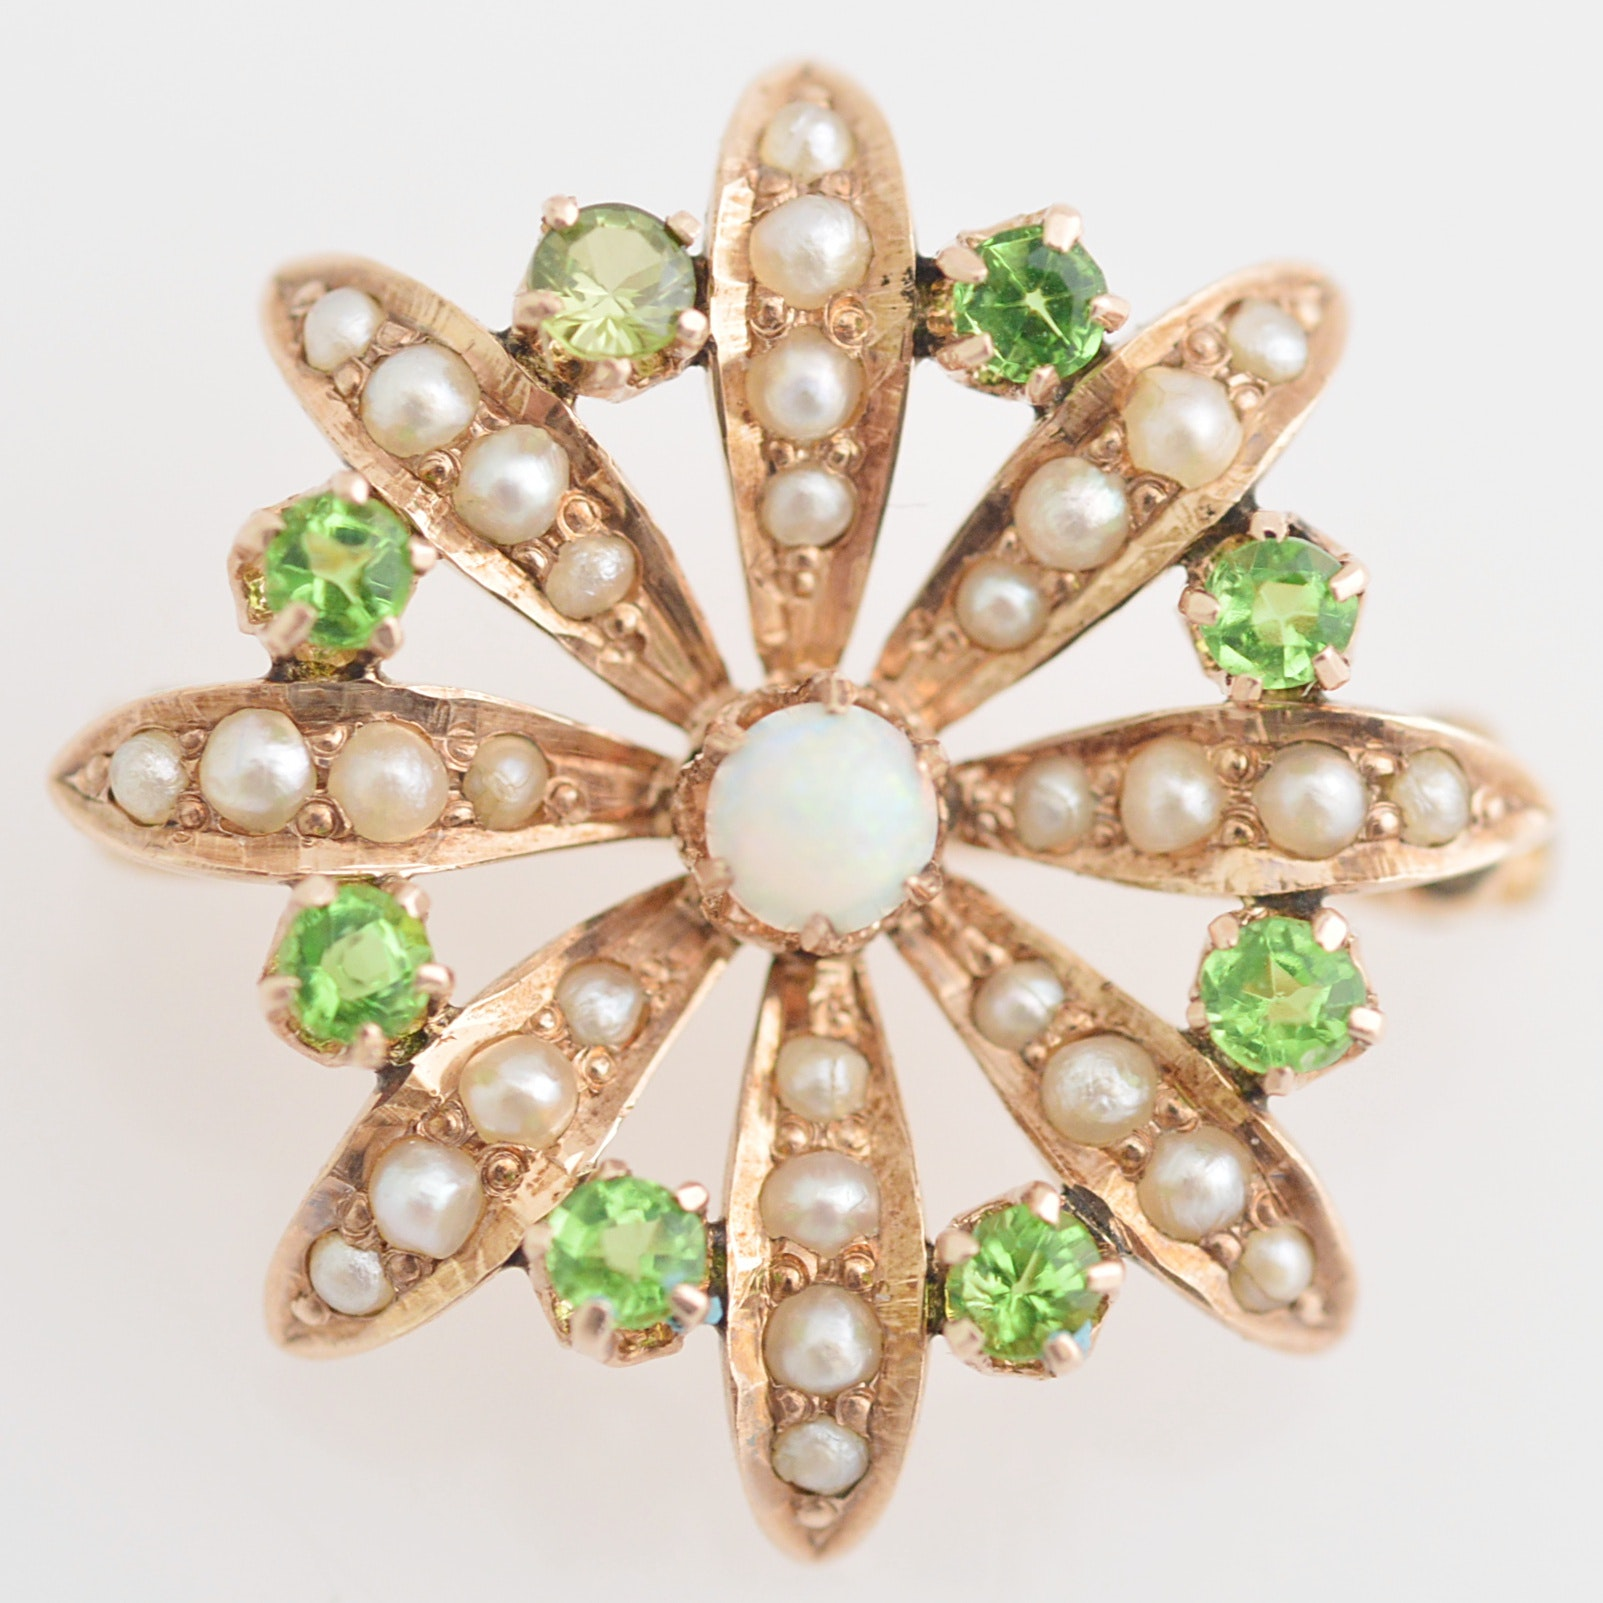 Vintage 14K Yellow Gold, Peridot, Opal and Seed Pearl Brooch